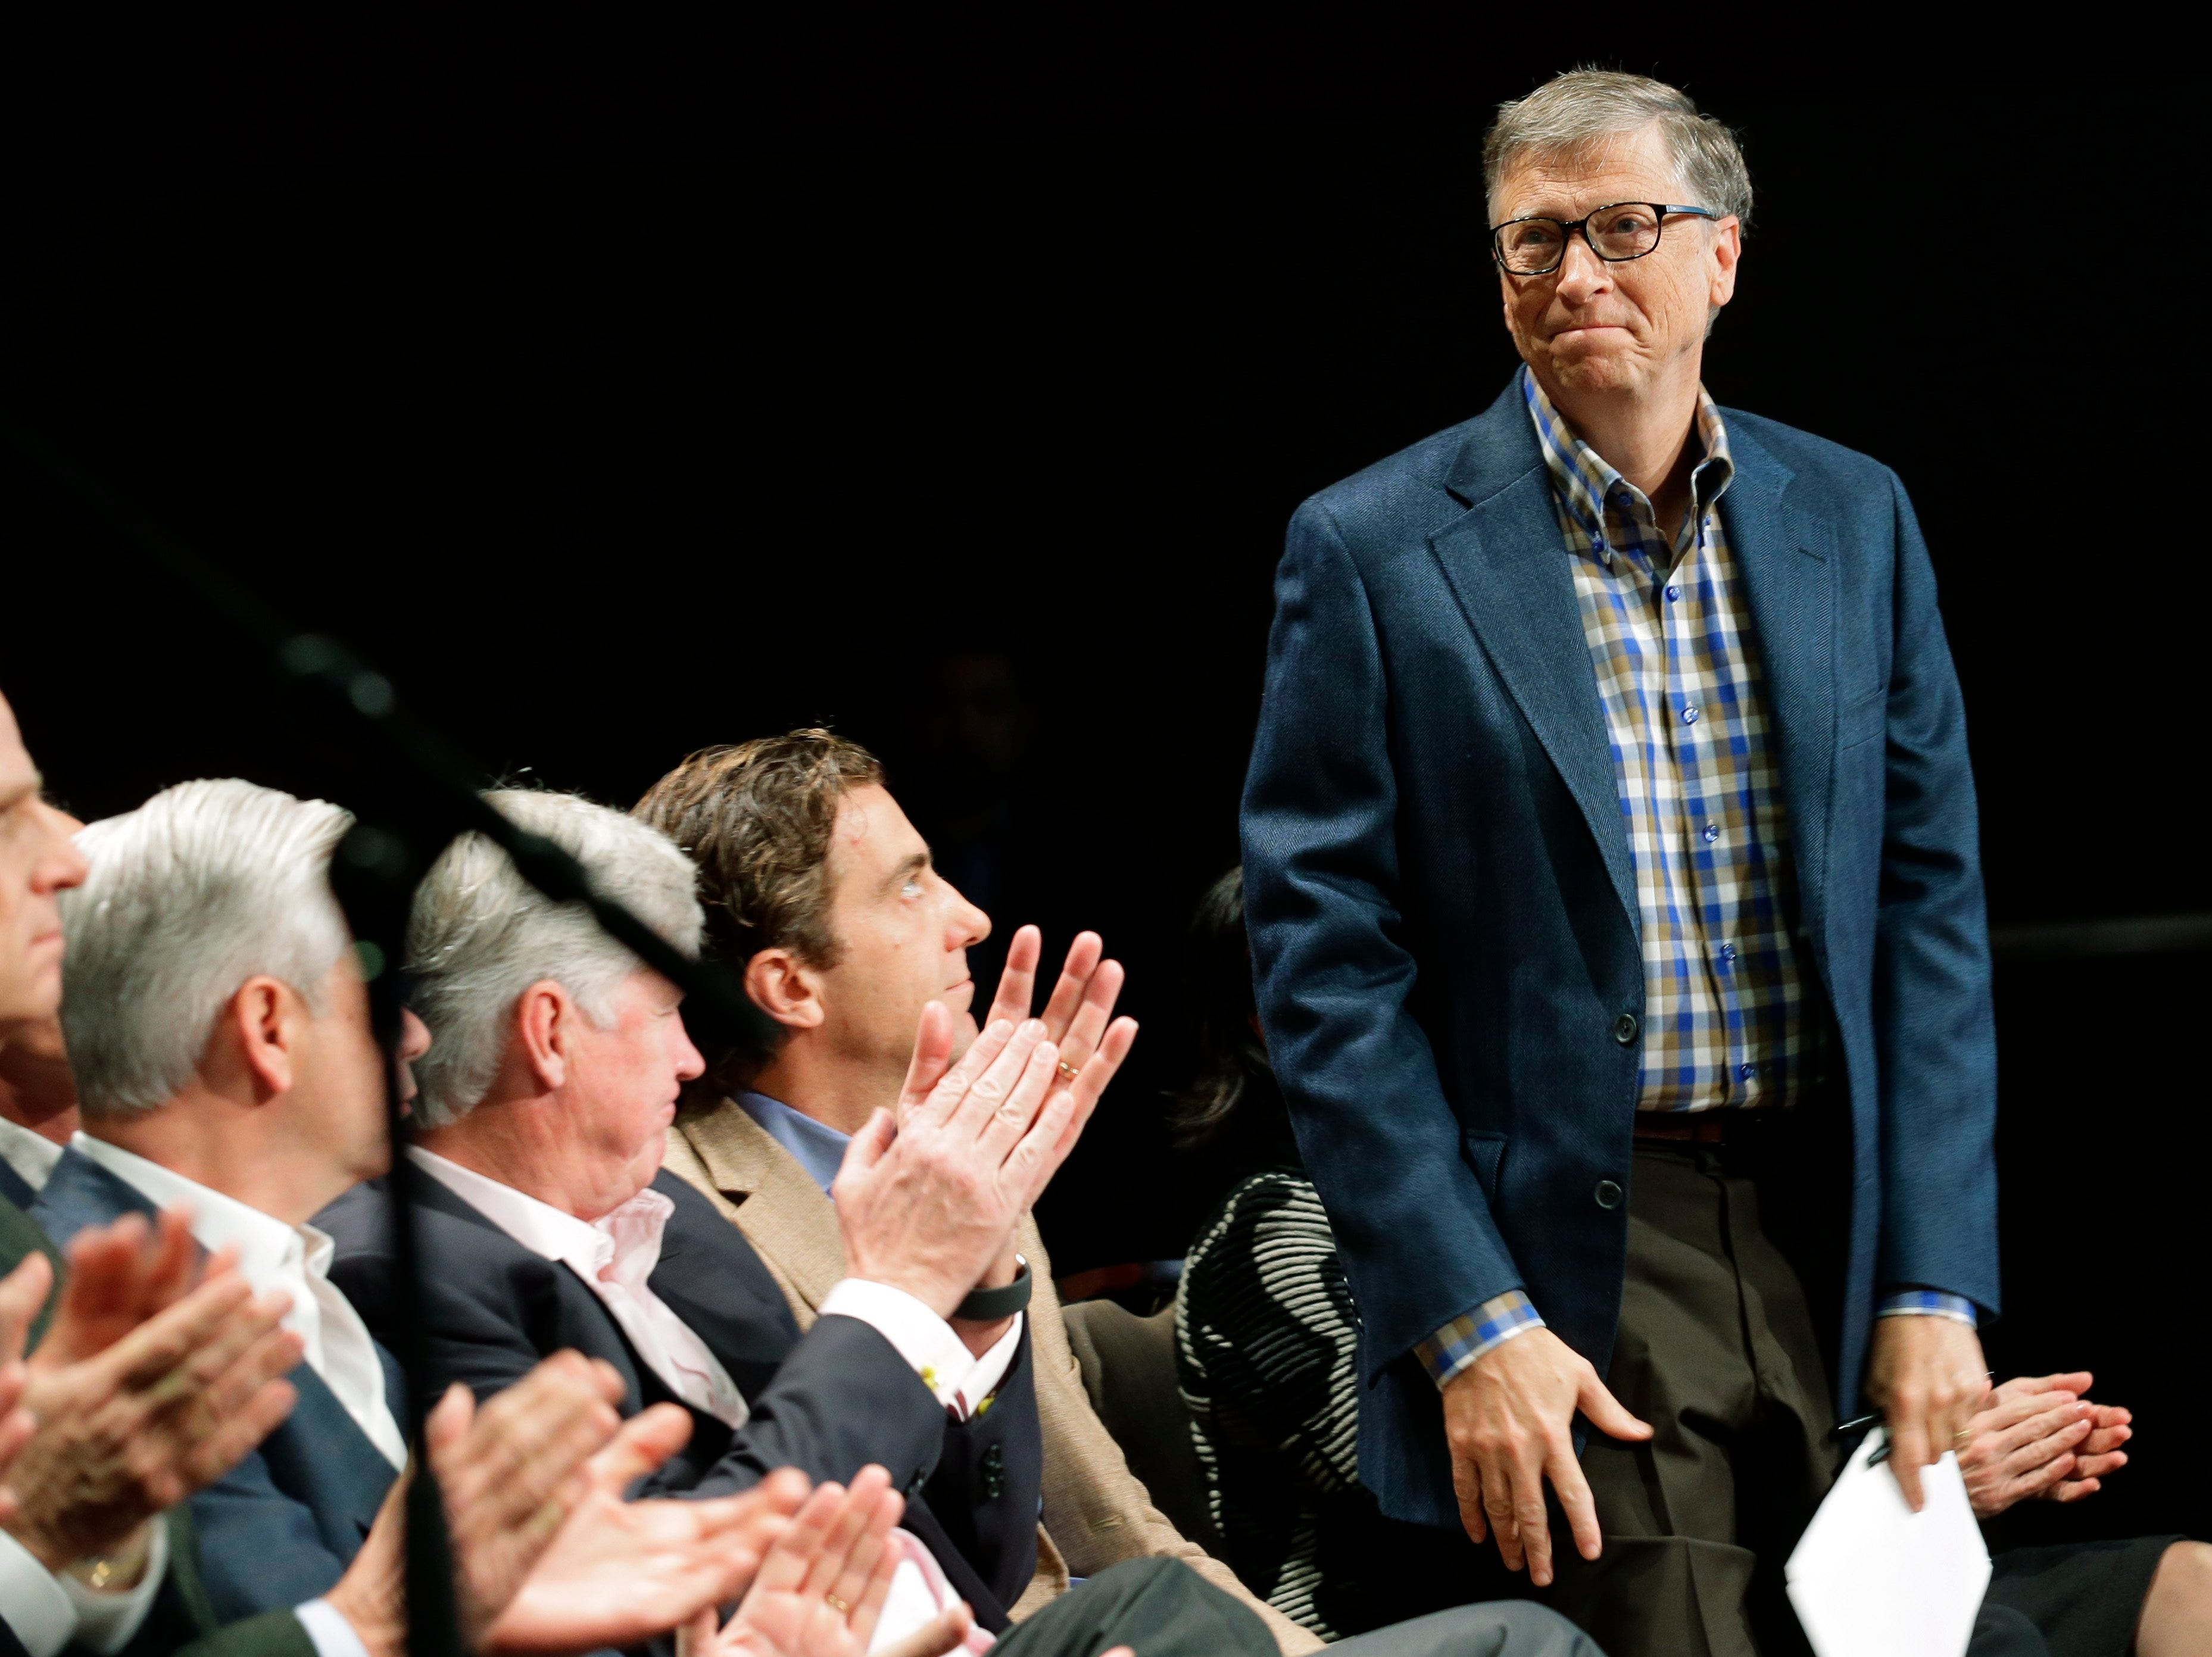 Microsoft Corp. founder Bill Gaes, right, is introduced Wednesday, Dec. 2, 2015, as he attends Microsoft's annual shareholders meeting in Bellevue, Wash.